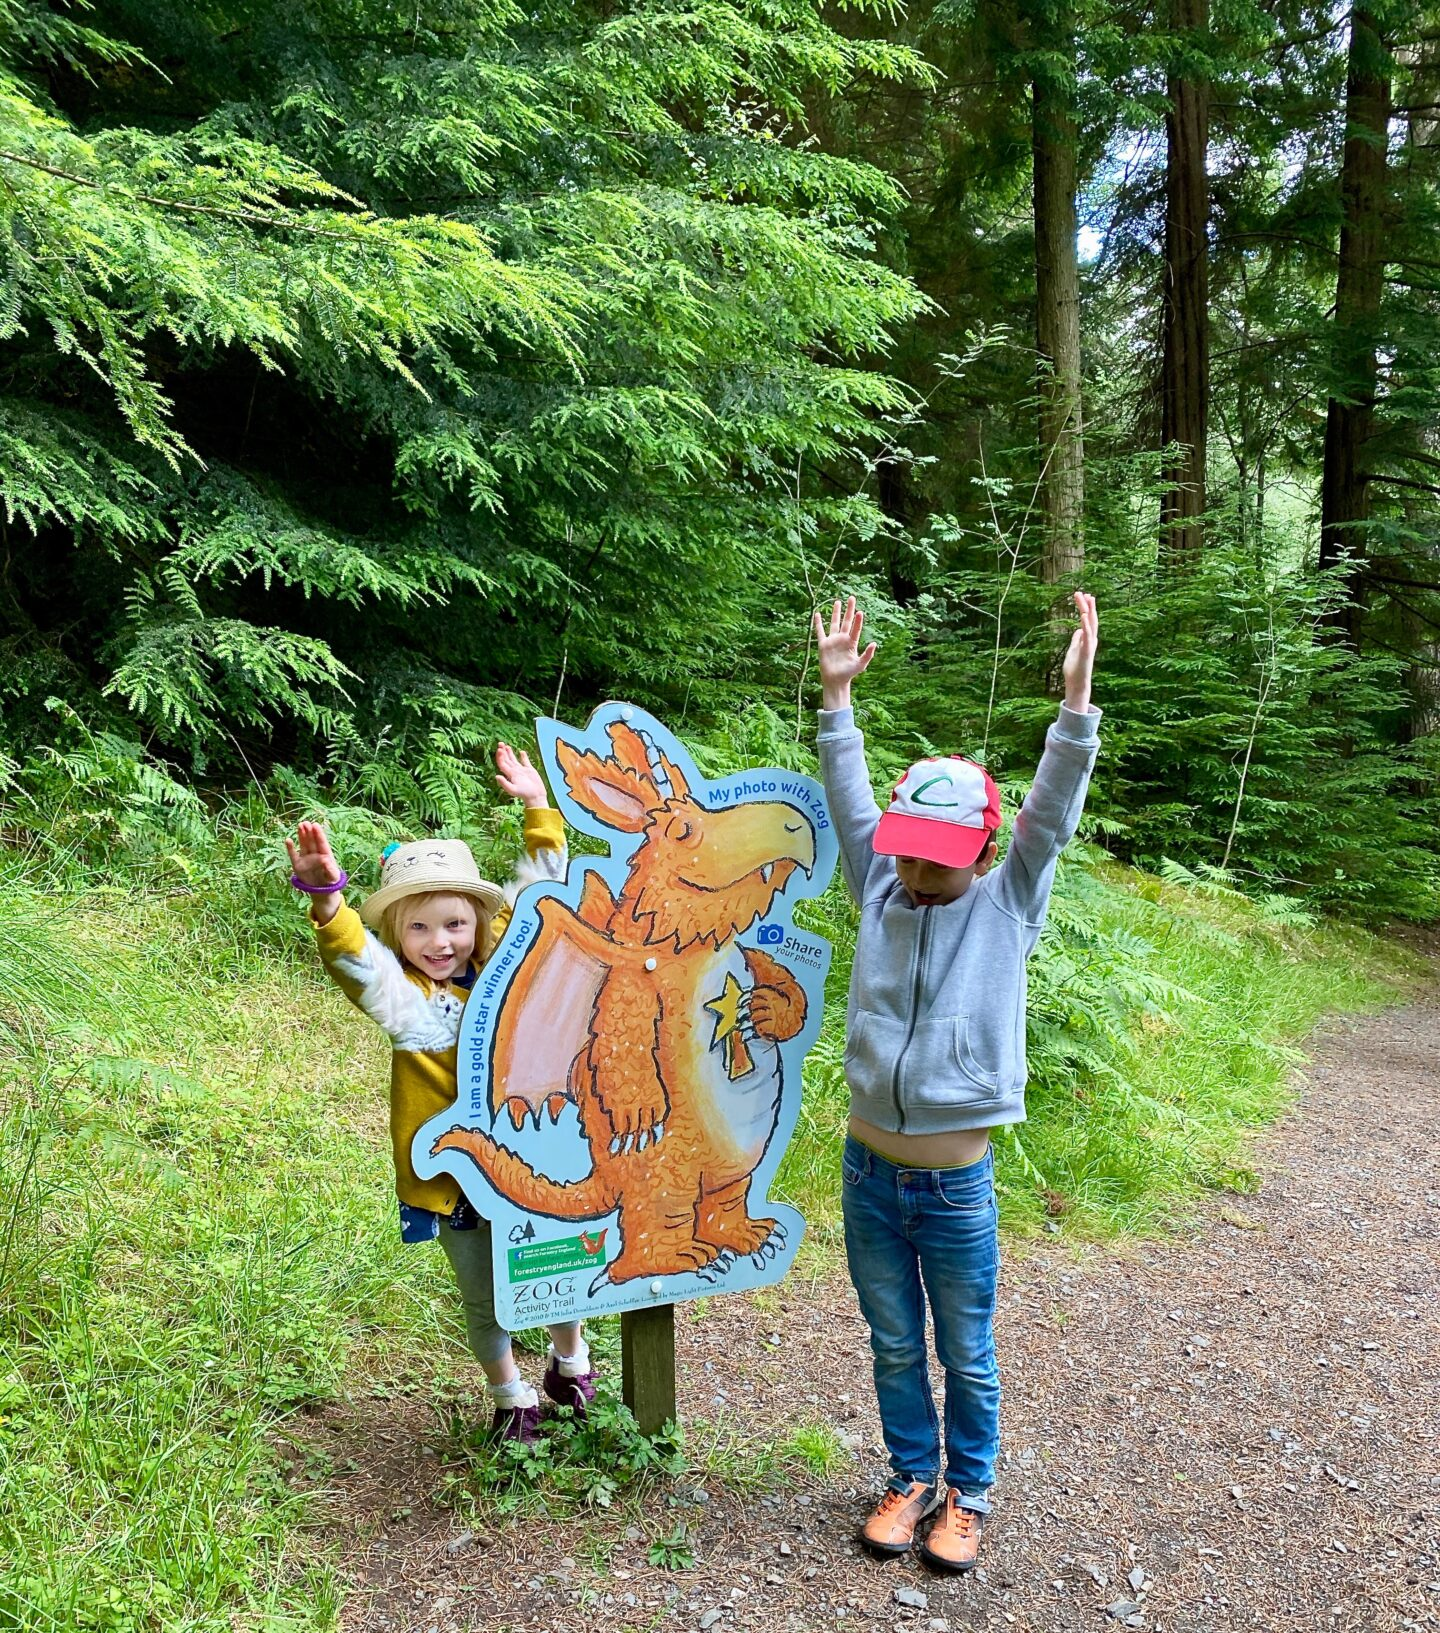 2 children holding their arms up in the air next to a Zog sign that makrs the end of a trail